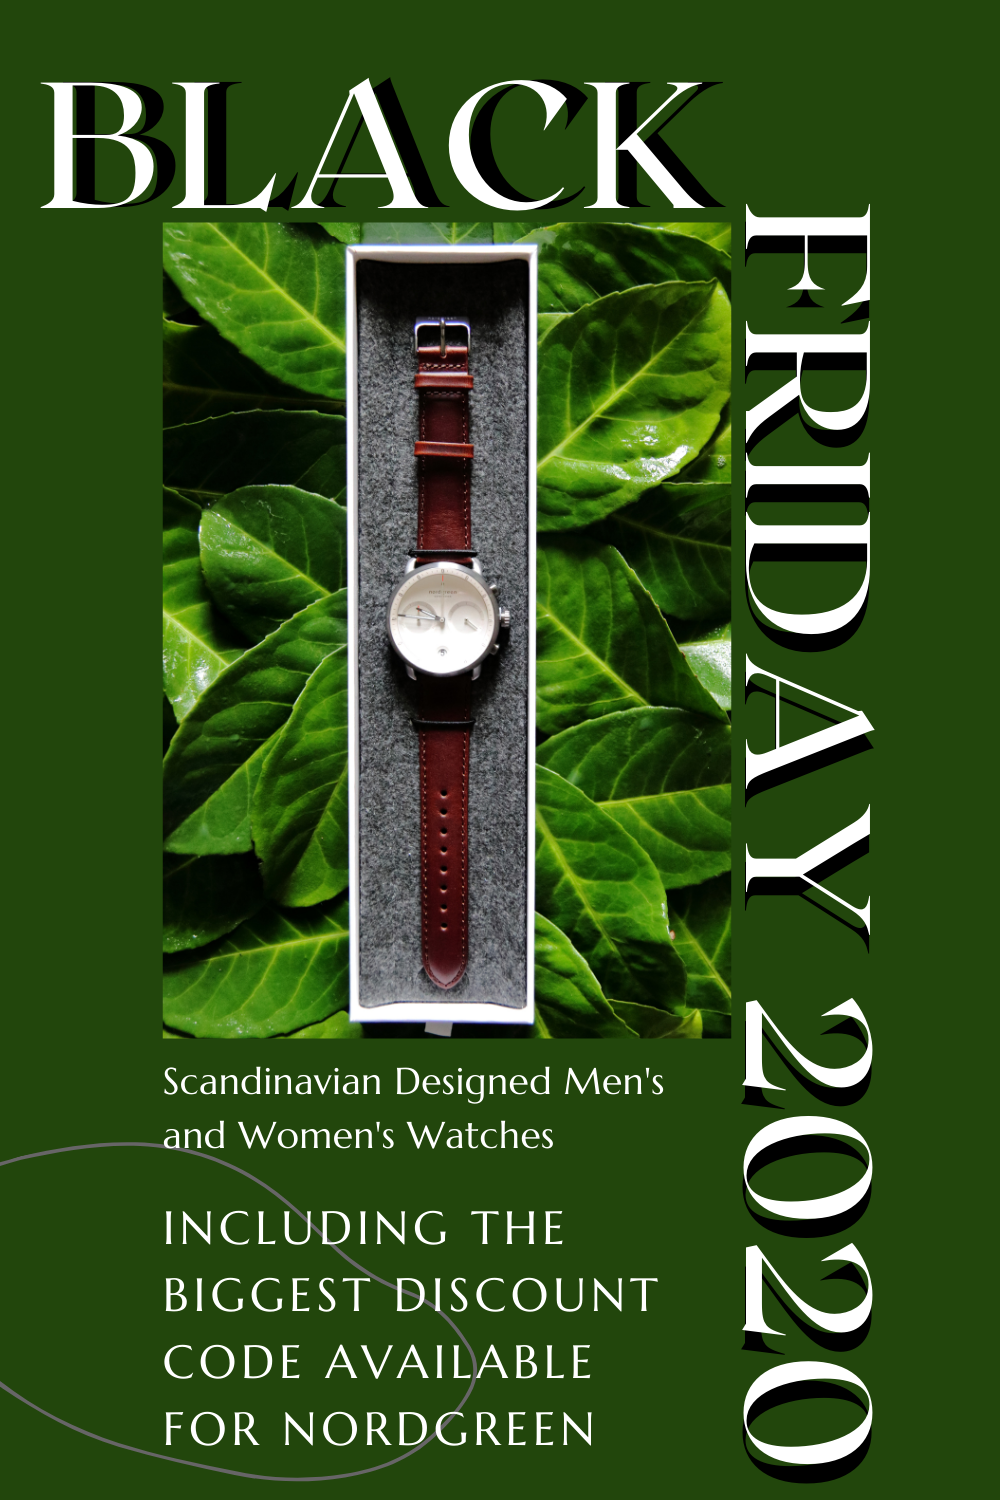 BLACK FRIDAY 2020: The Biggest Discount Code for Scandinavian Designed Men's and Women's Watches from Nordgreen